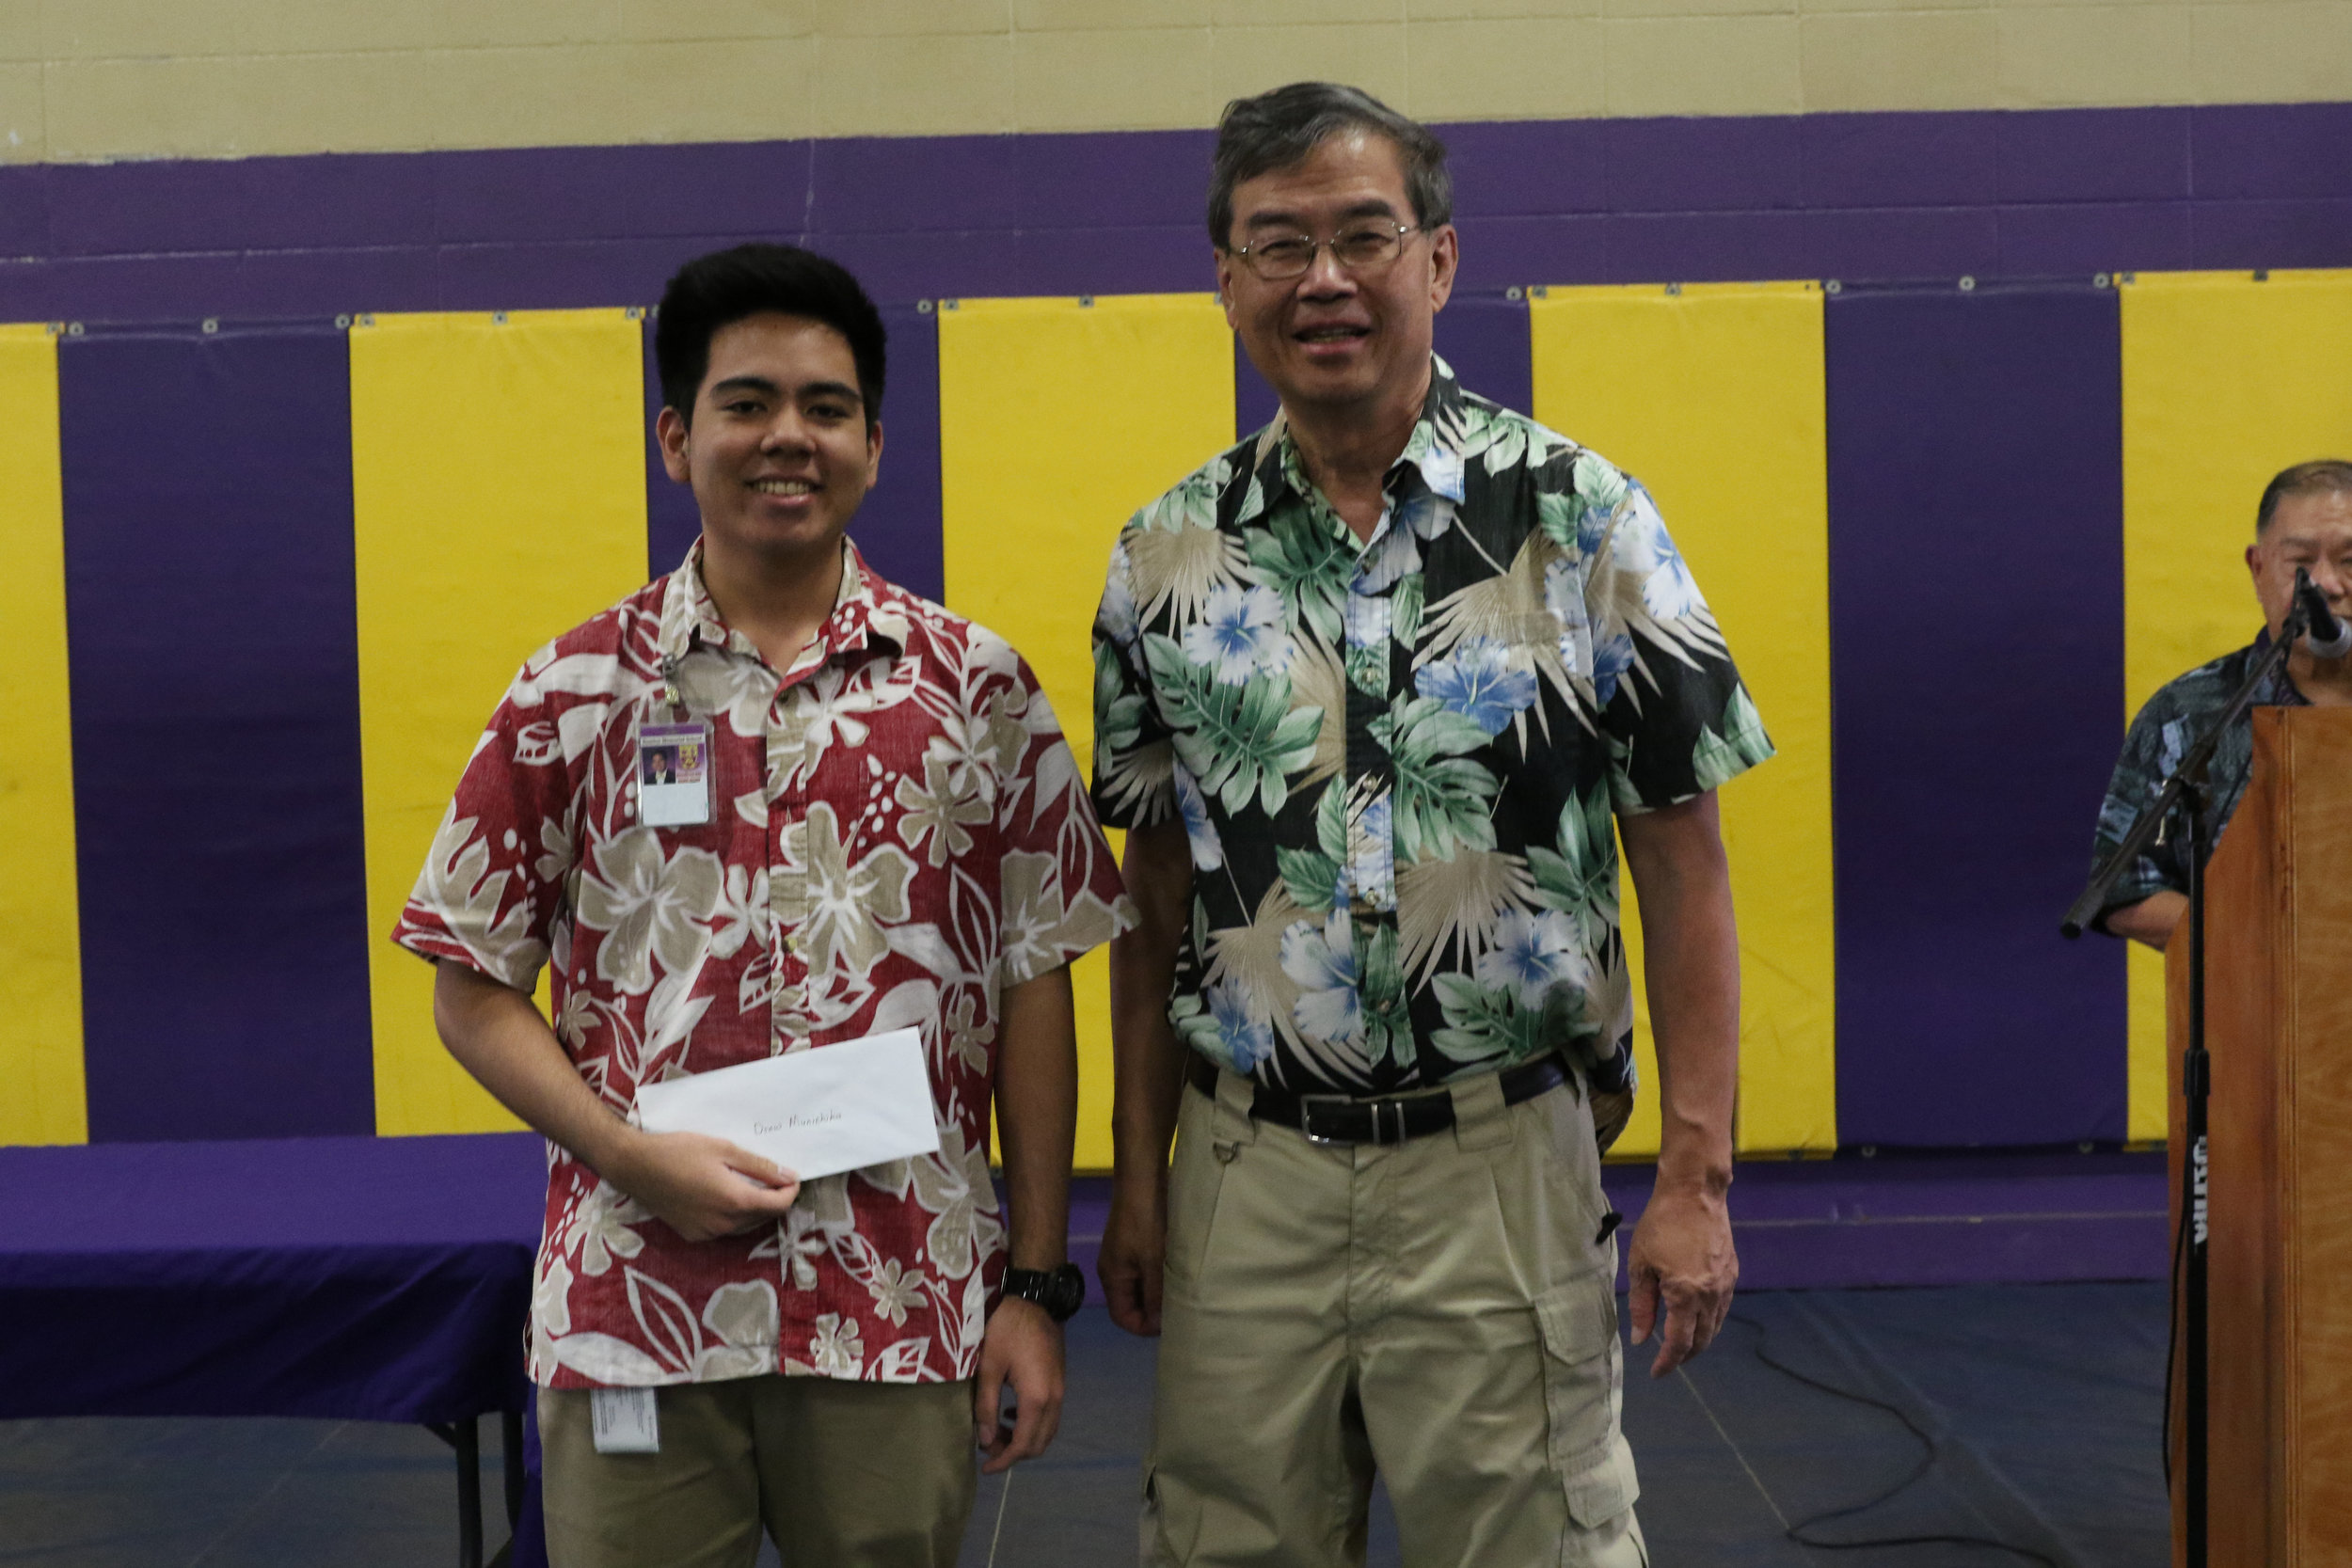 Honolulu Lions Club Scholarship